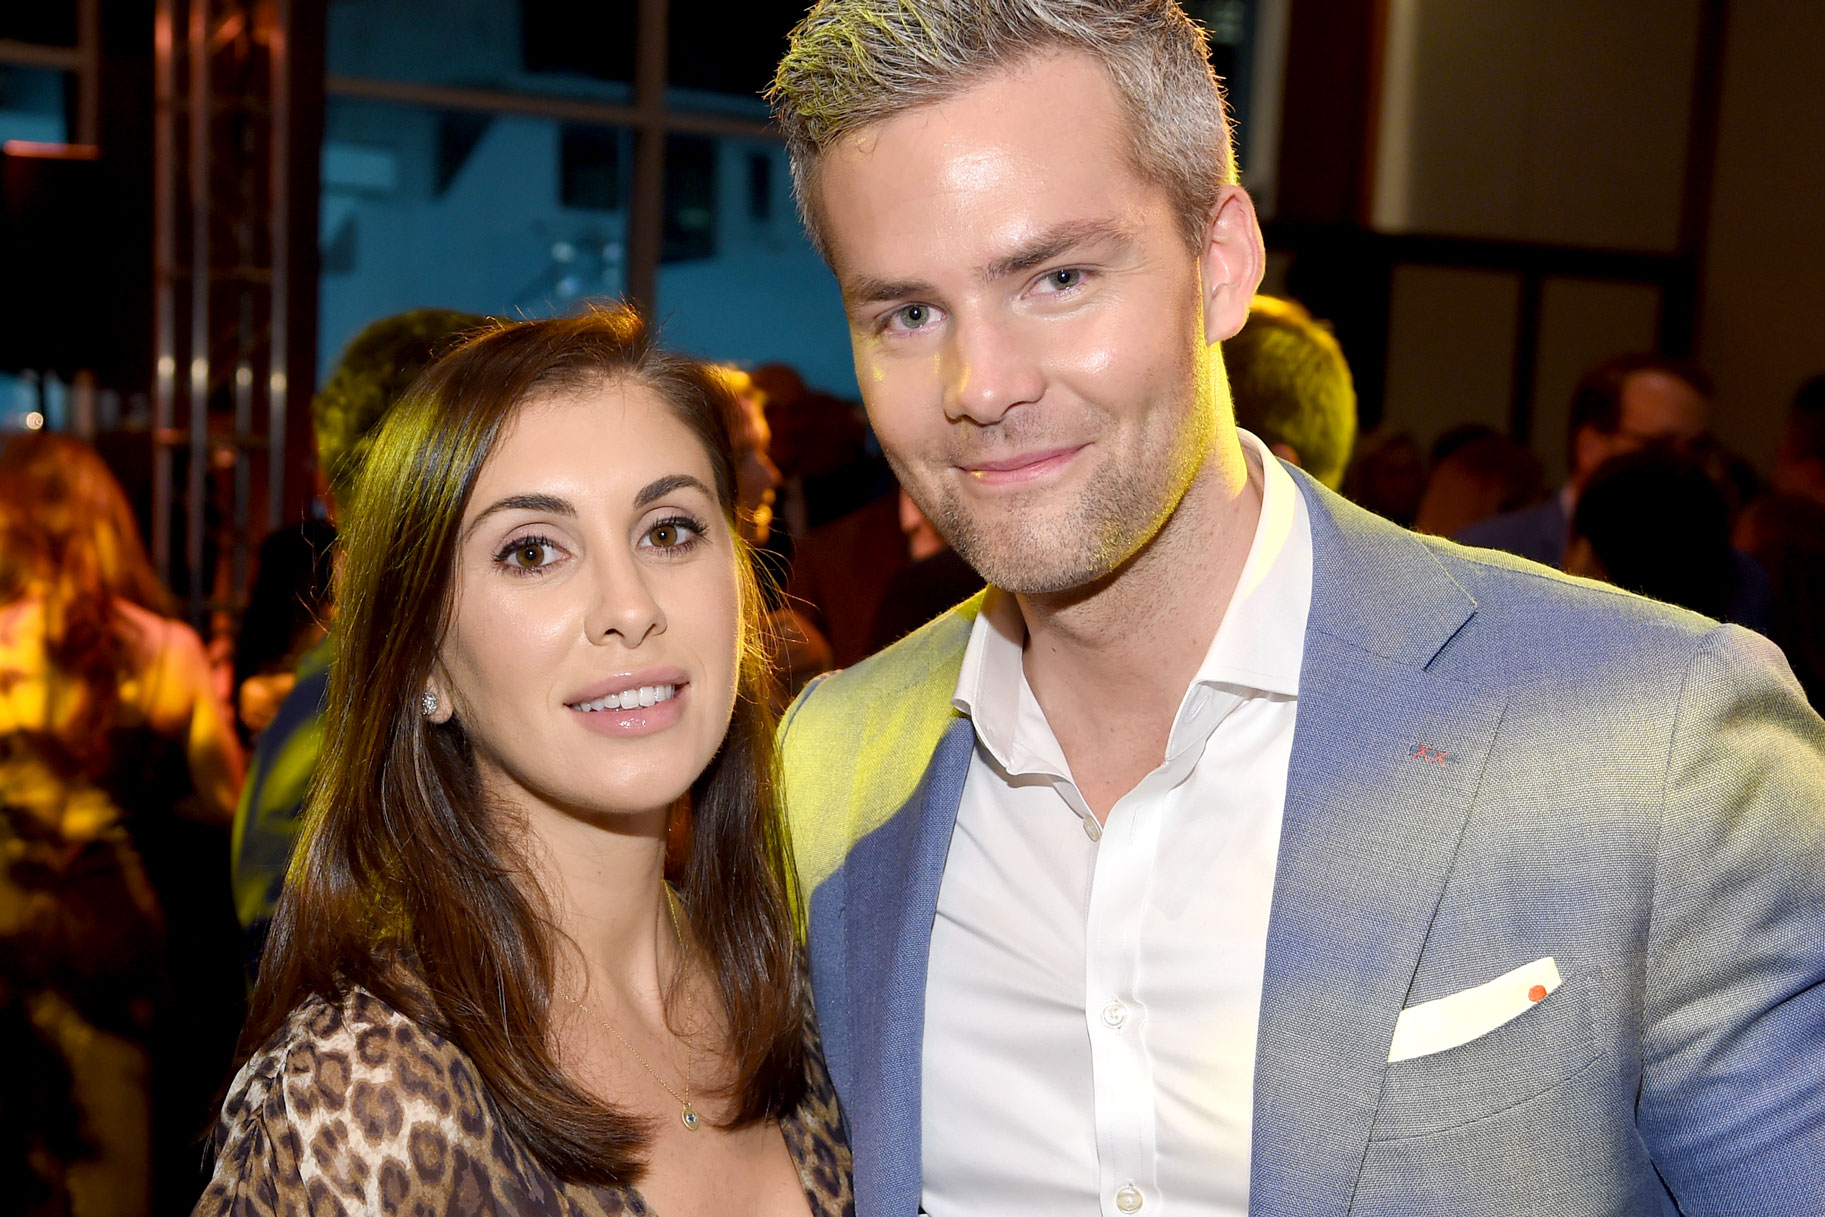 Ryan Serhant and Emilia Bechrakis